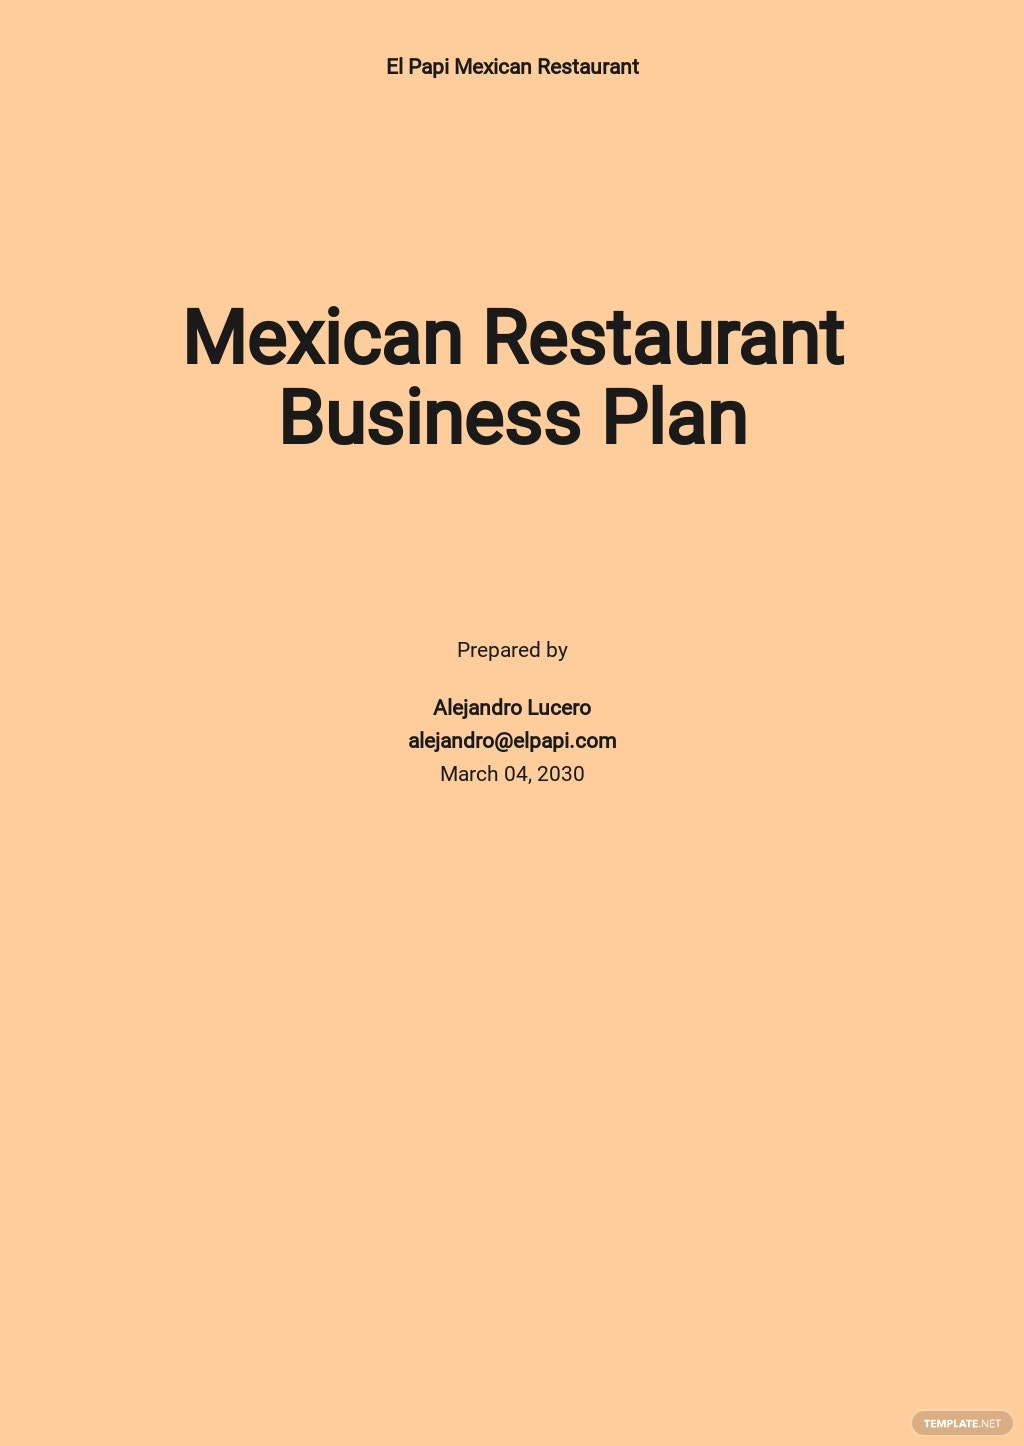 Mexican Restaurant Business Plan Template